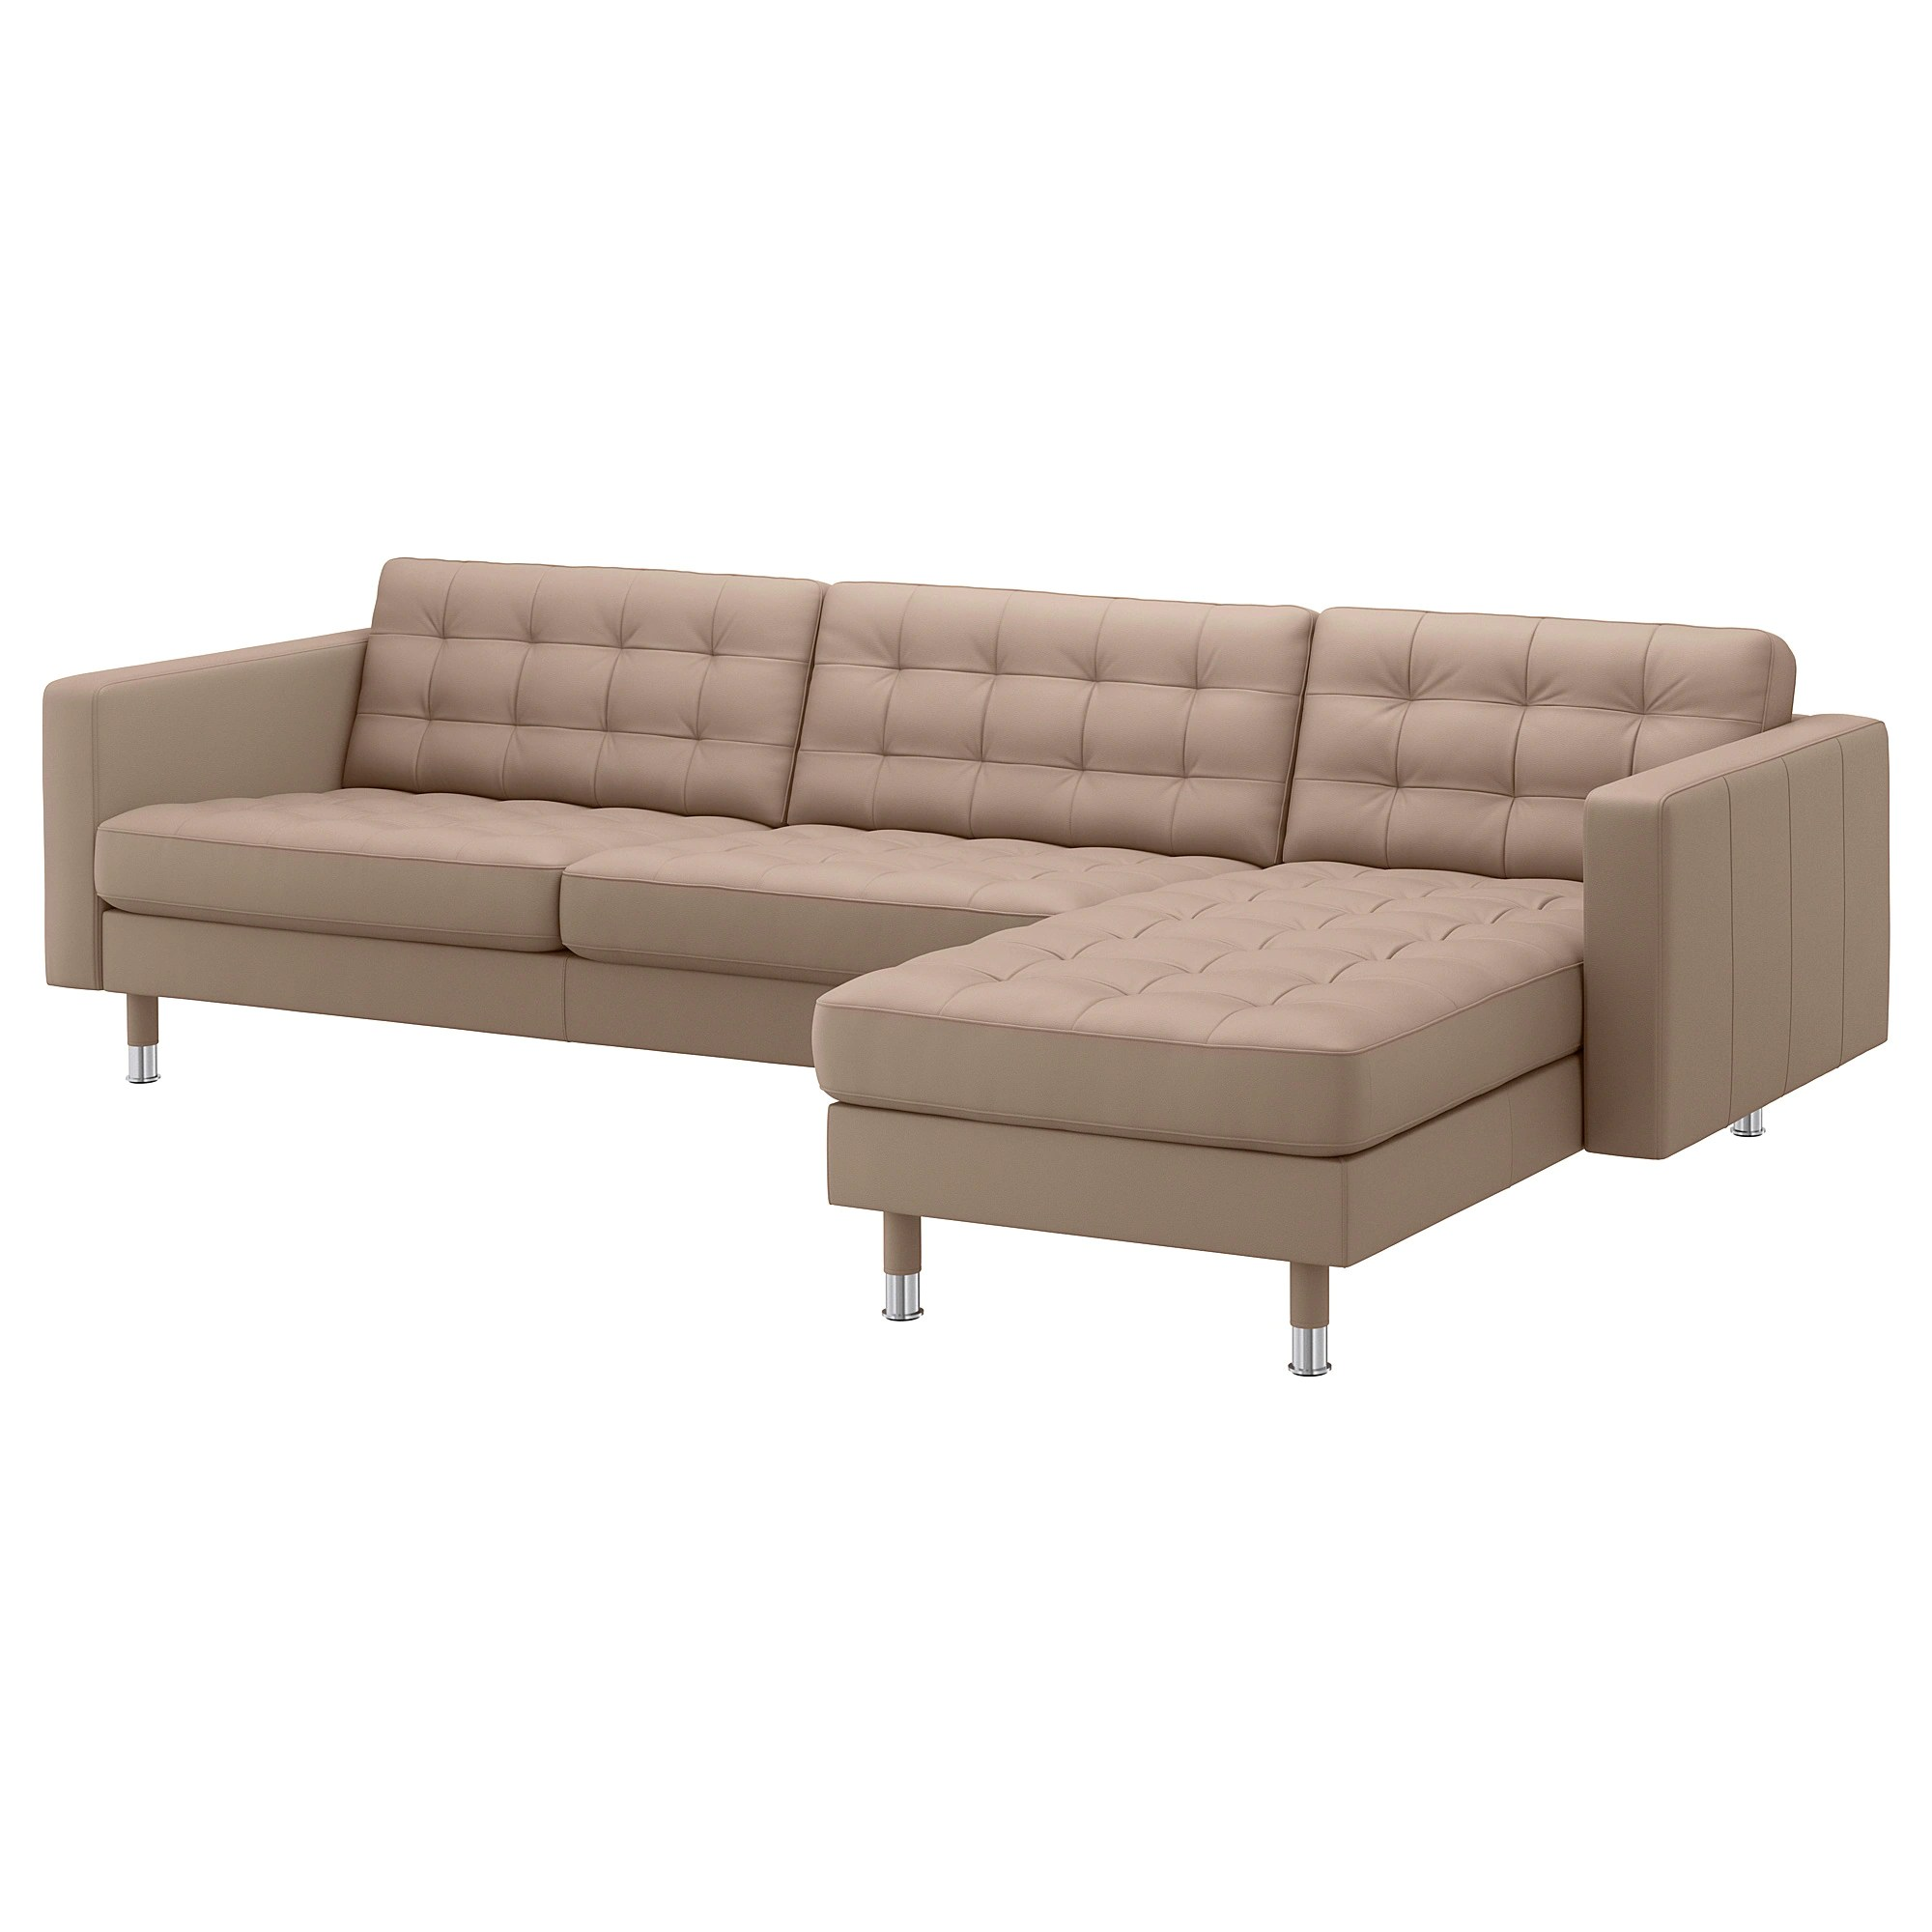 Dreisitzer Sofa Ikea Landskrona Sectional 4 Seat With Chaise Grann Bomstad Gray Green Wood